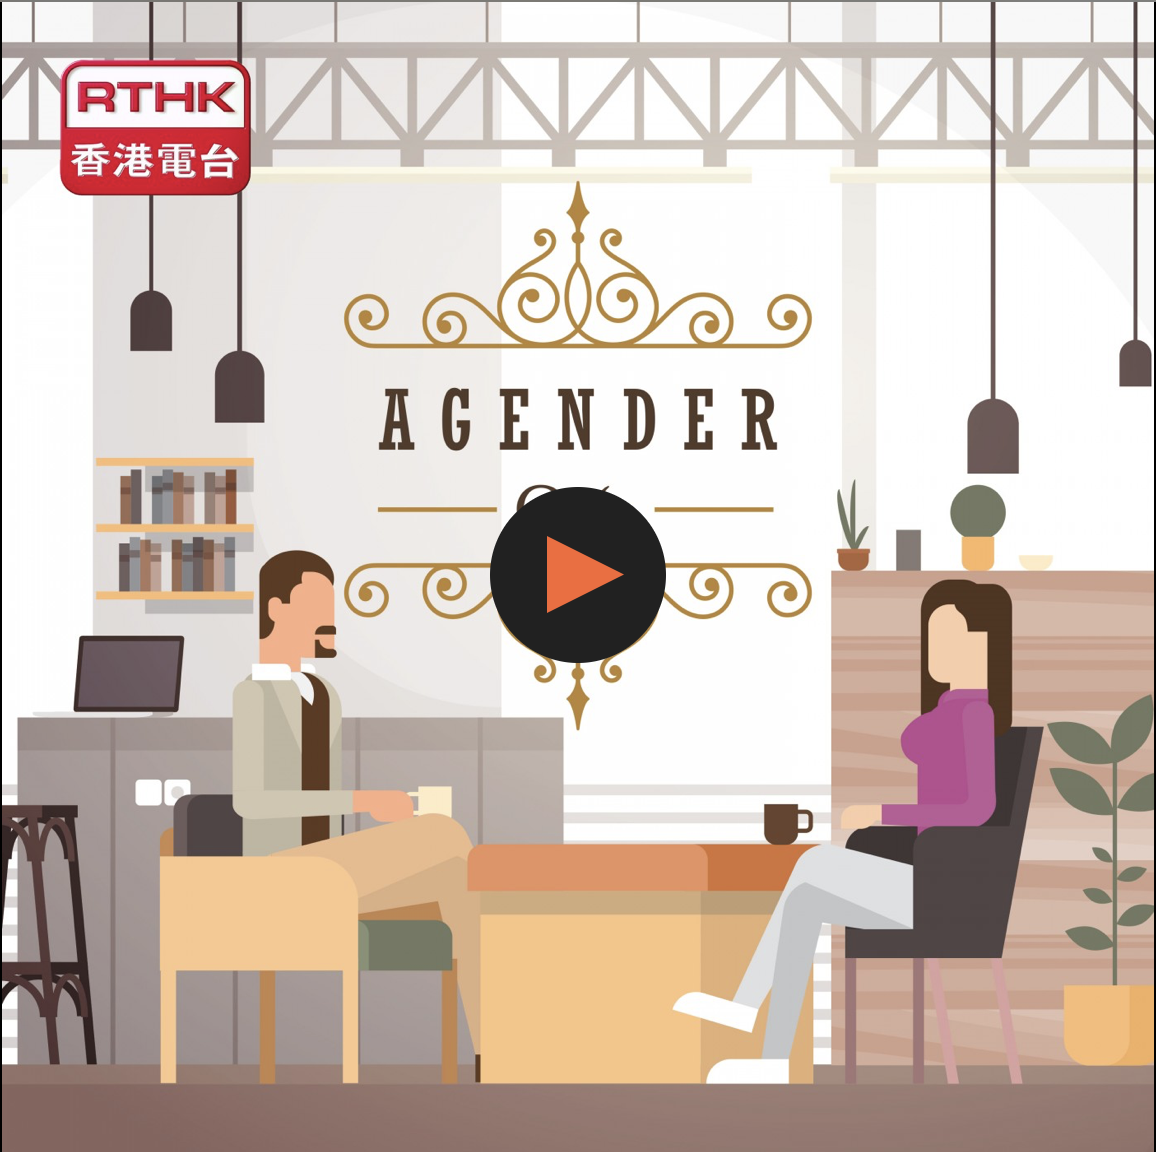 Podcast One: Agender Cafe – Eating disorders (6-6-2019)